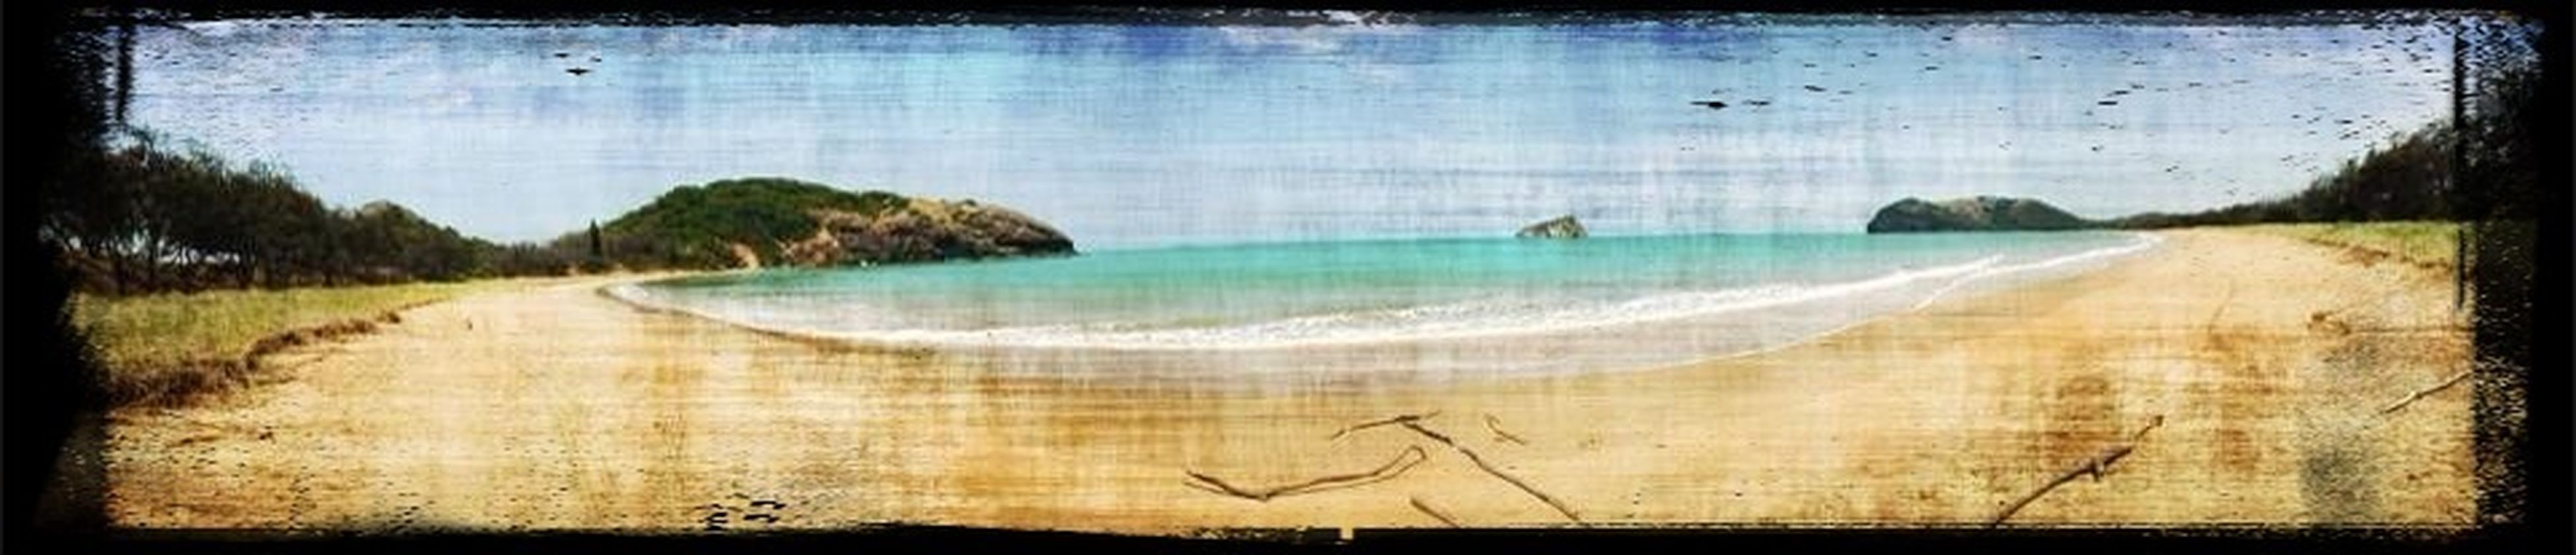 transfer print, water, auto post production filter, sea, sand, beach, tranquil scene, tranquility, scenics, nature, beauty in nature, sky, shore, panoramic, horizon over water, day, outdoors, idyllic, coastline, landscape